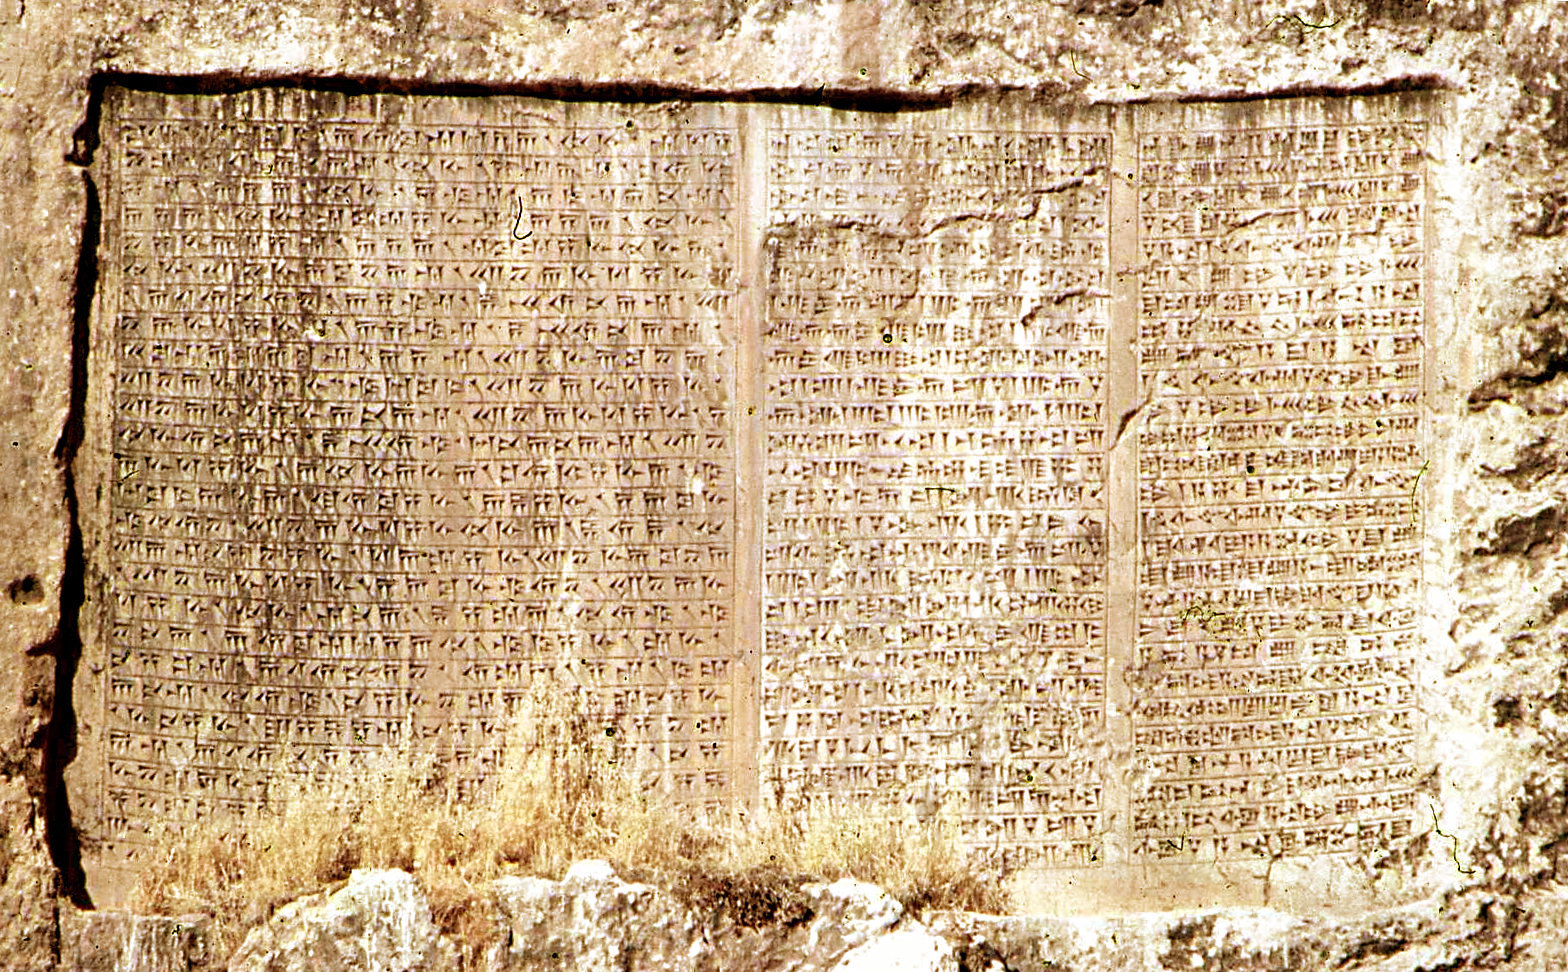 Dark Matter: The Lost Cycle of Time Trilingual_inscription_of_Xerxes,_Van,_1973